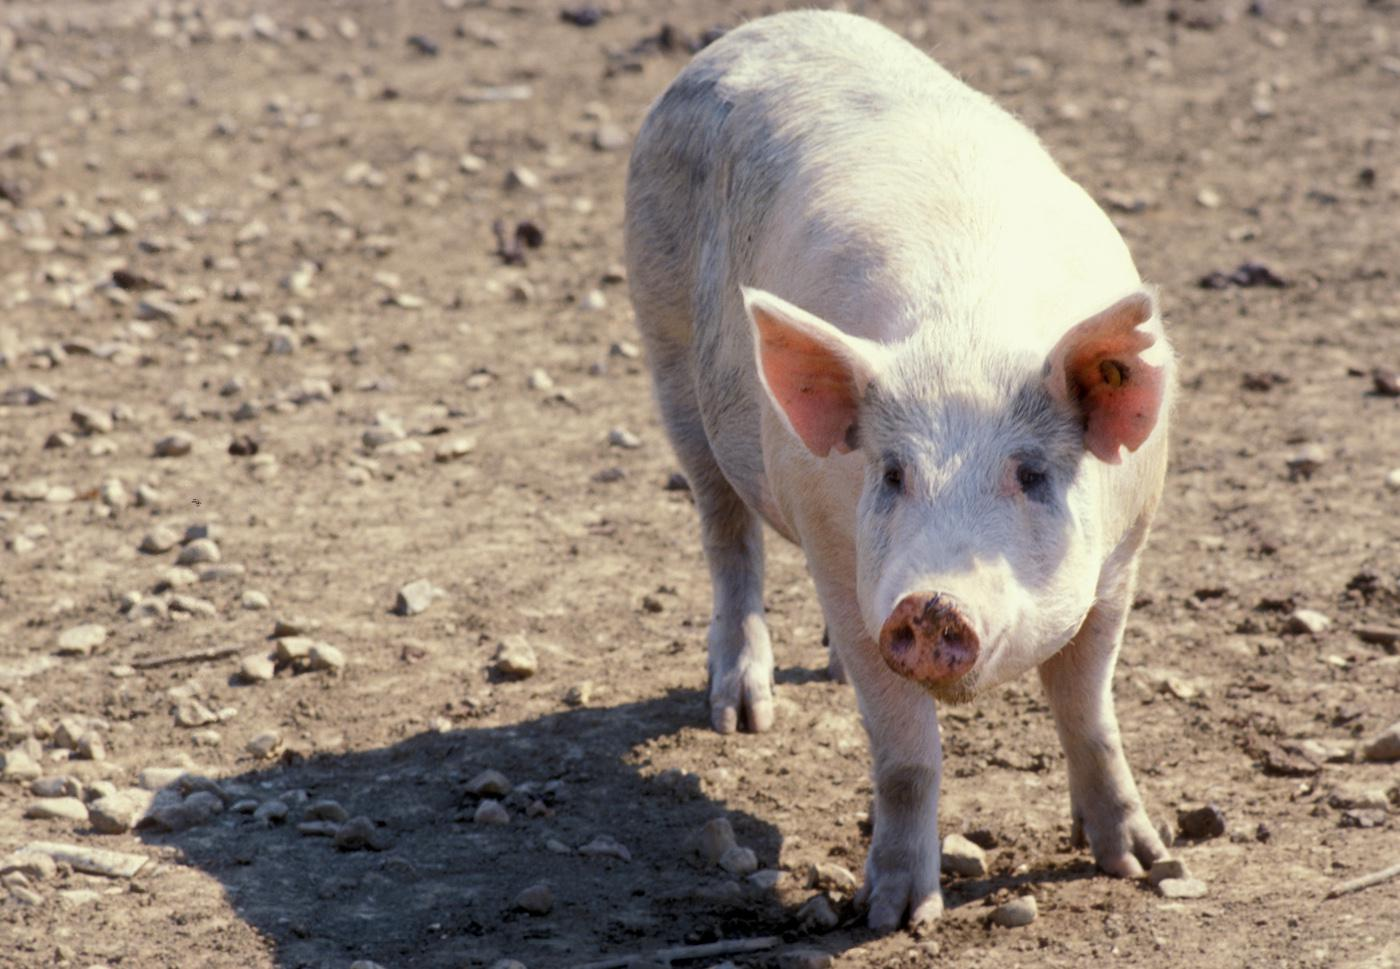 As a precaution against a new strain of swine flu, Extension agents and veterinarians will be closely monitoring the health of hogs involved in the 2012 Mississippi State Fair in Jackson. (MSU Ag Communications file photo)